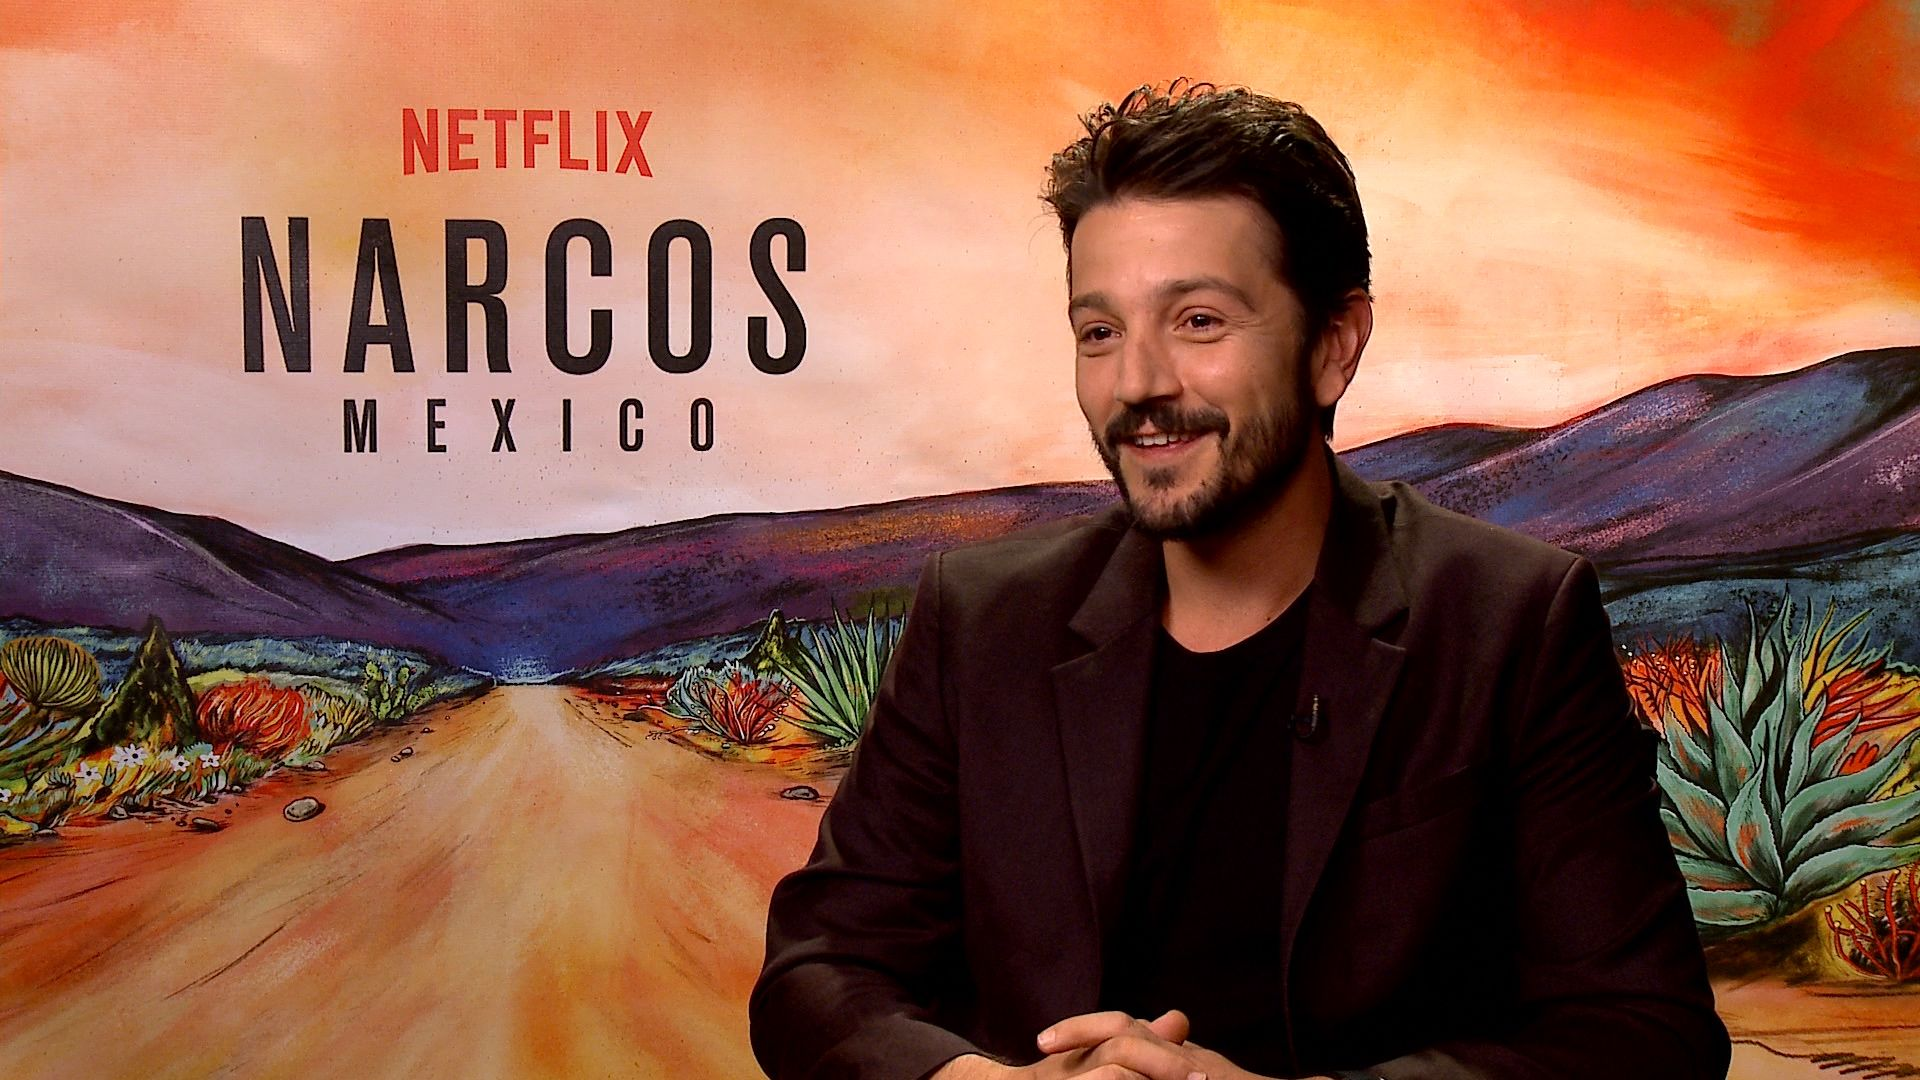 Diego Luna on 'Narcos: Mexico' and Not Playing the Stereotypical Criminal